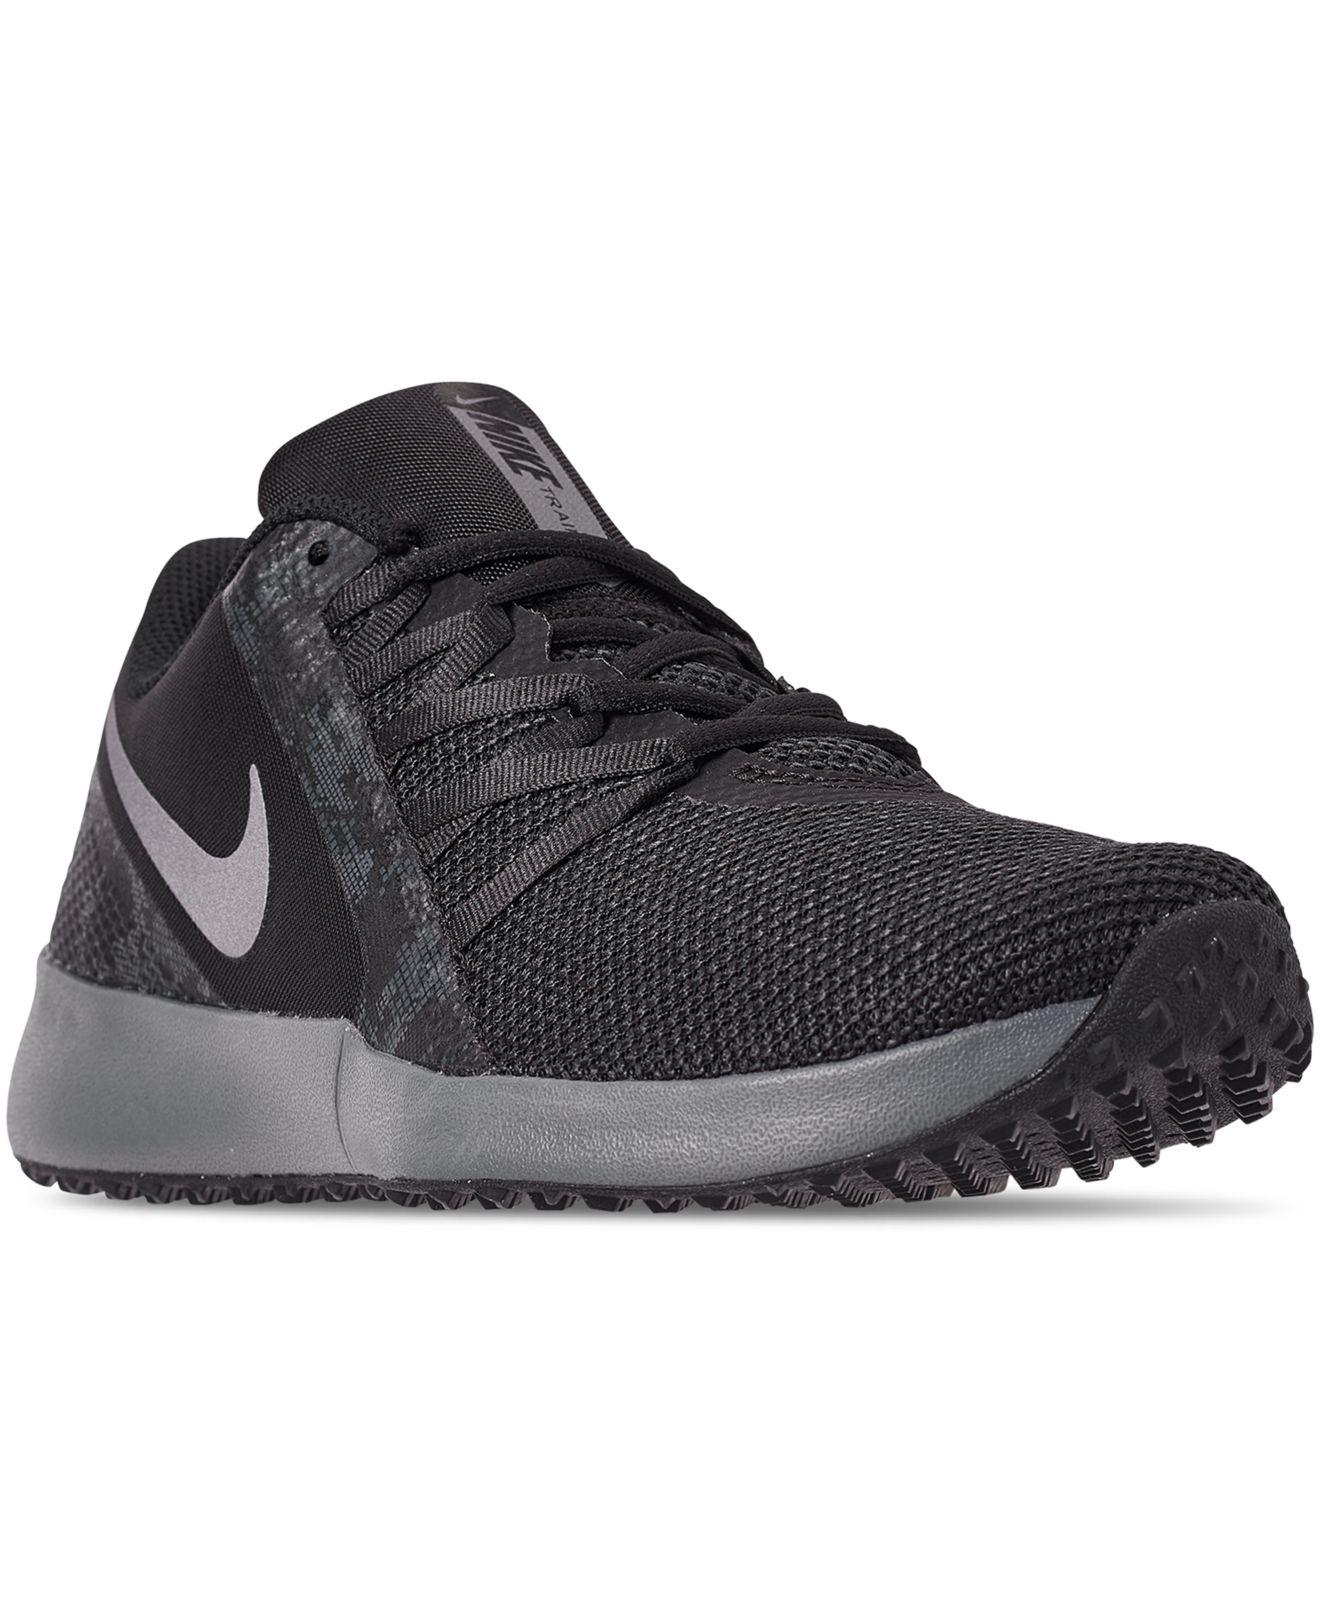 36cae031295 nike -BLACKMTLC-COOL-GREY-ANTH-Varsity-Compete-Camo-Training-Sneakers-From-Finish-Line.jpeg